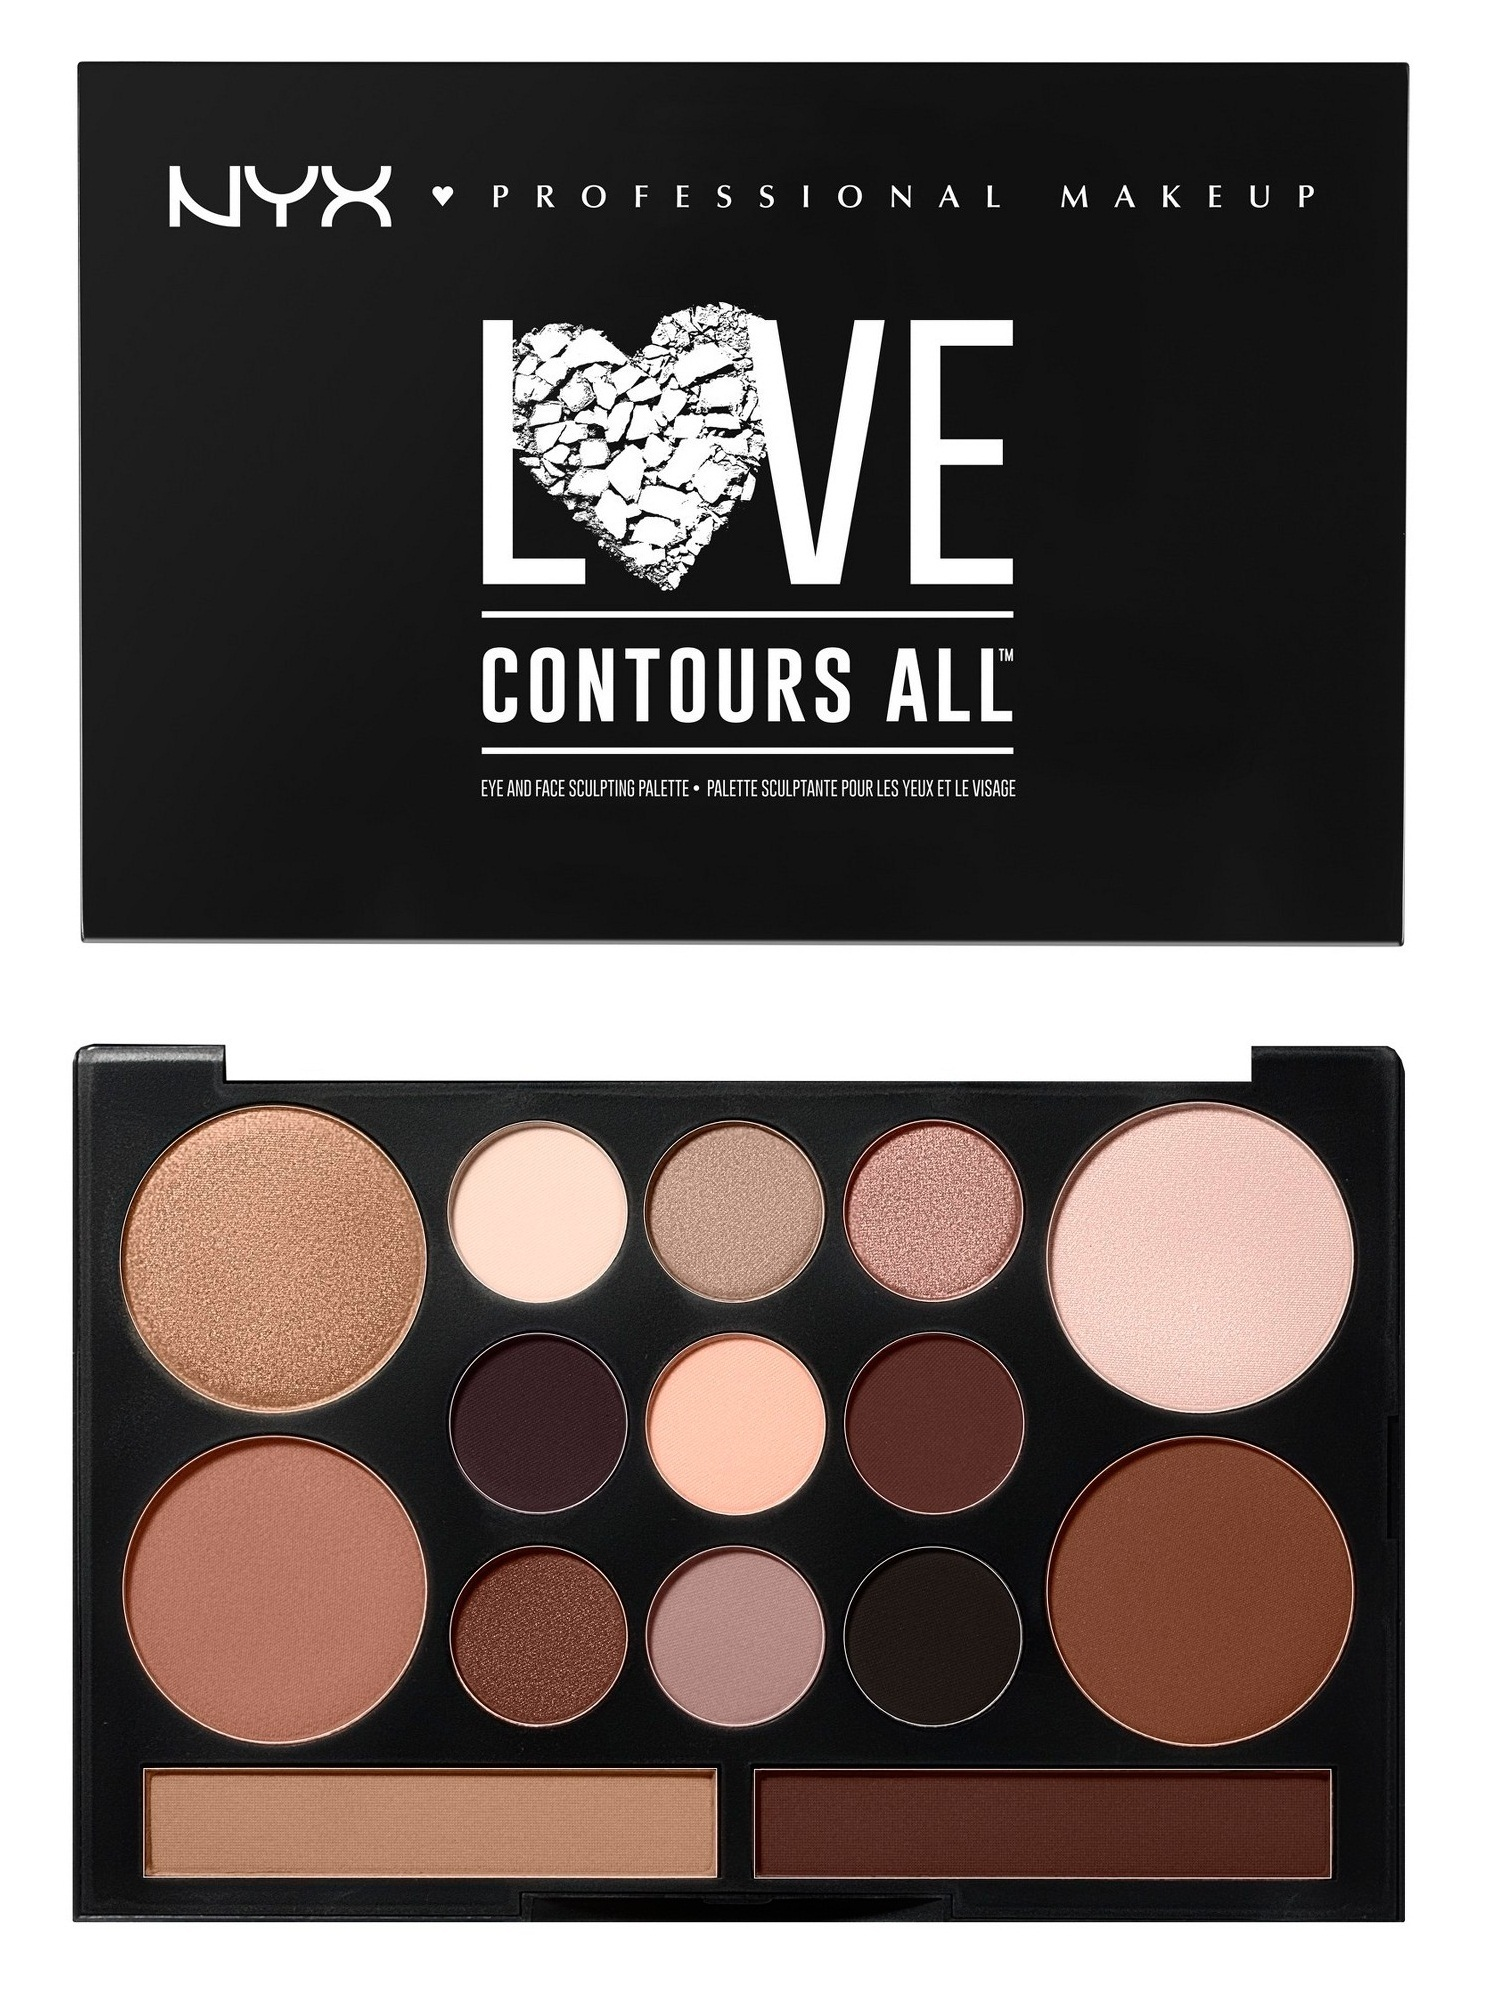 NYX Professional Makeup Love Contours All Palette.jpg